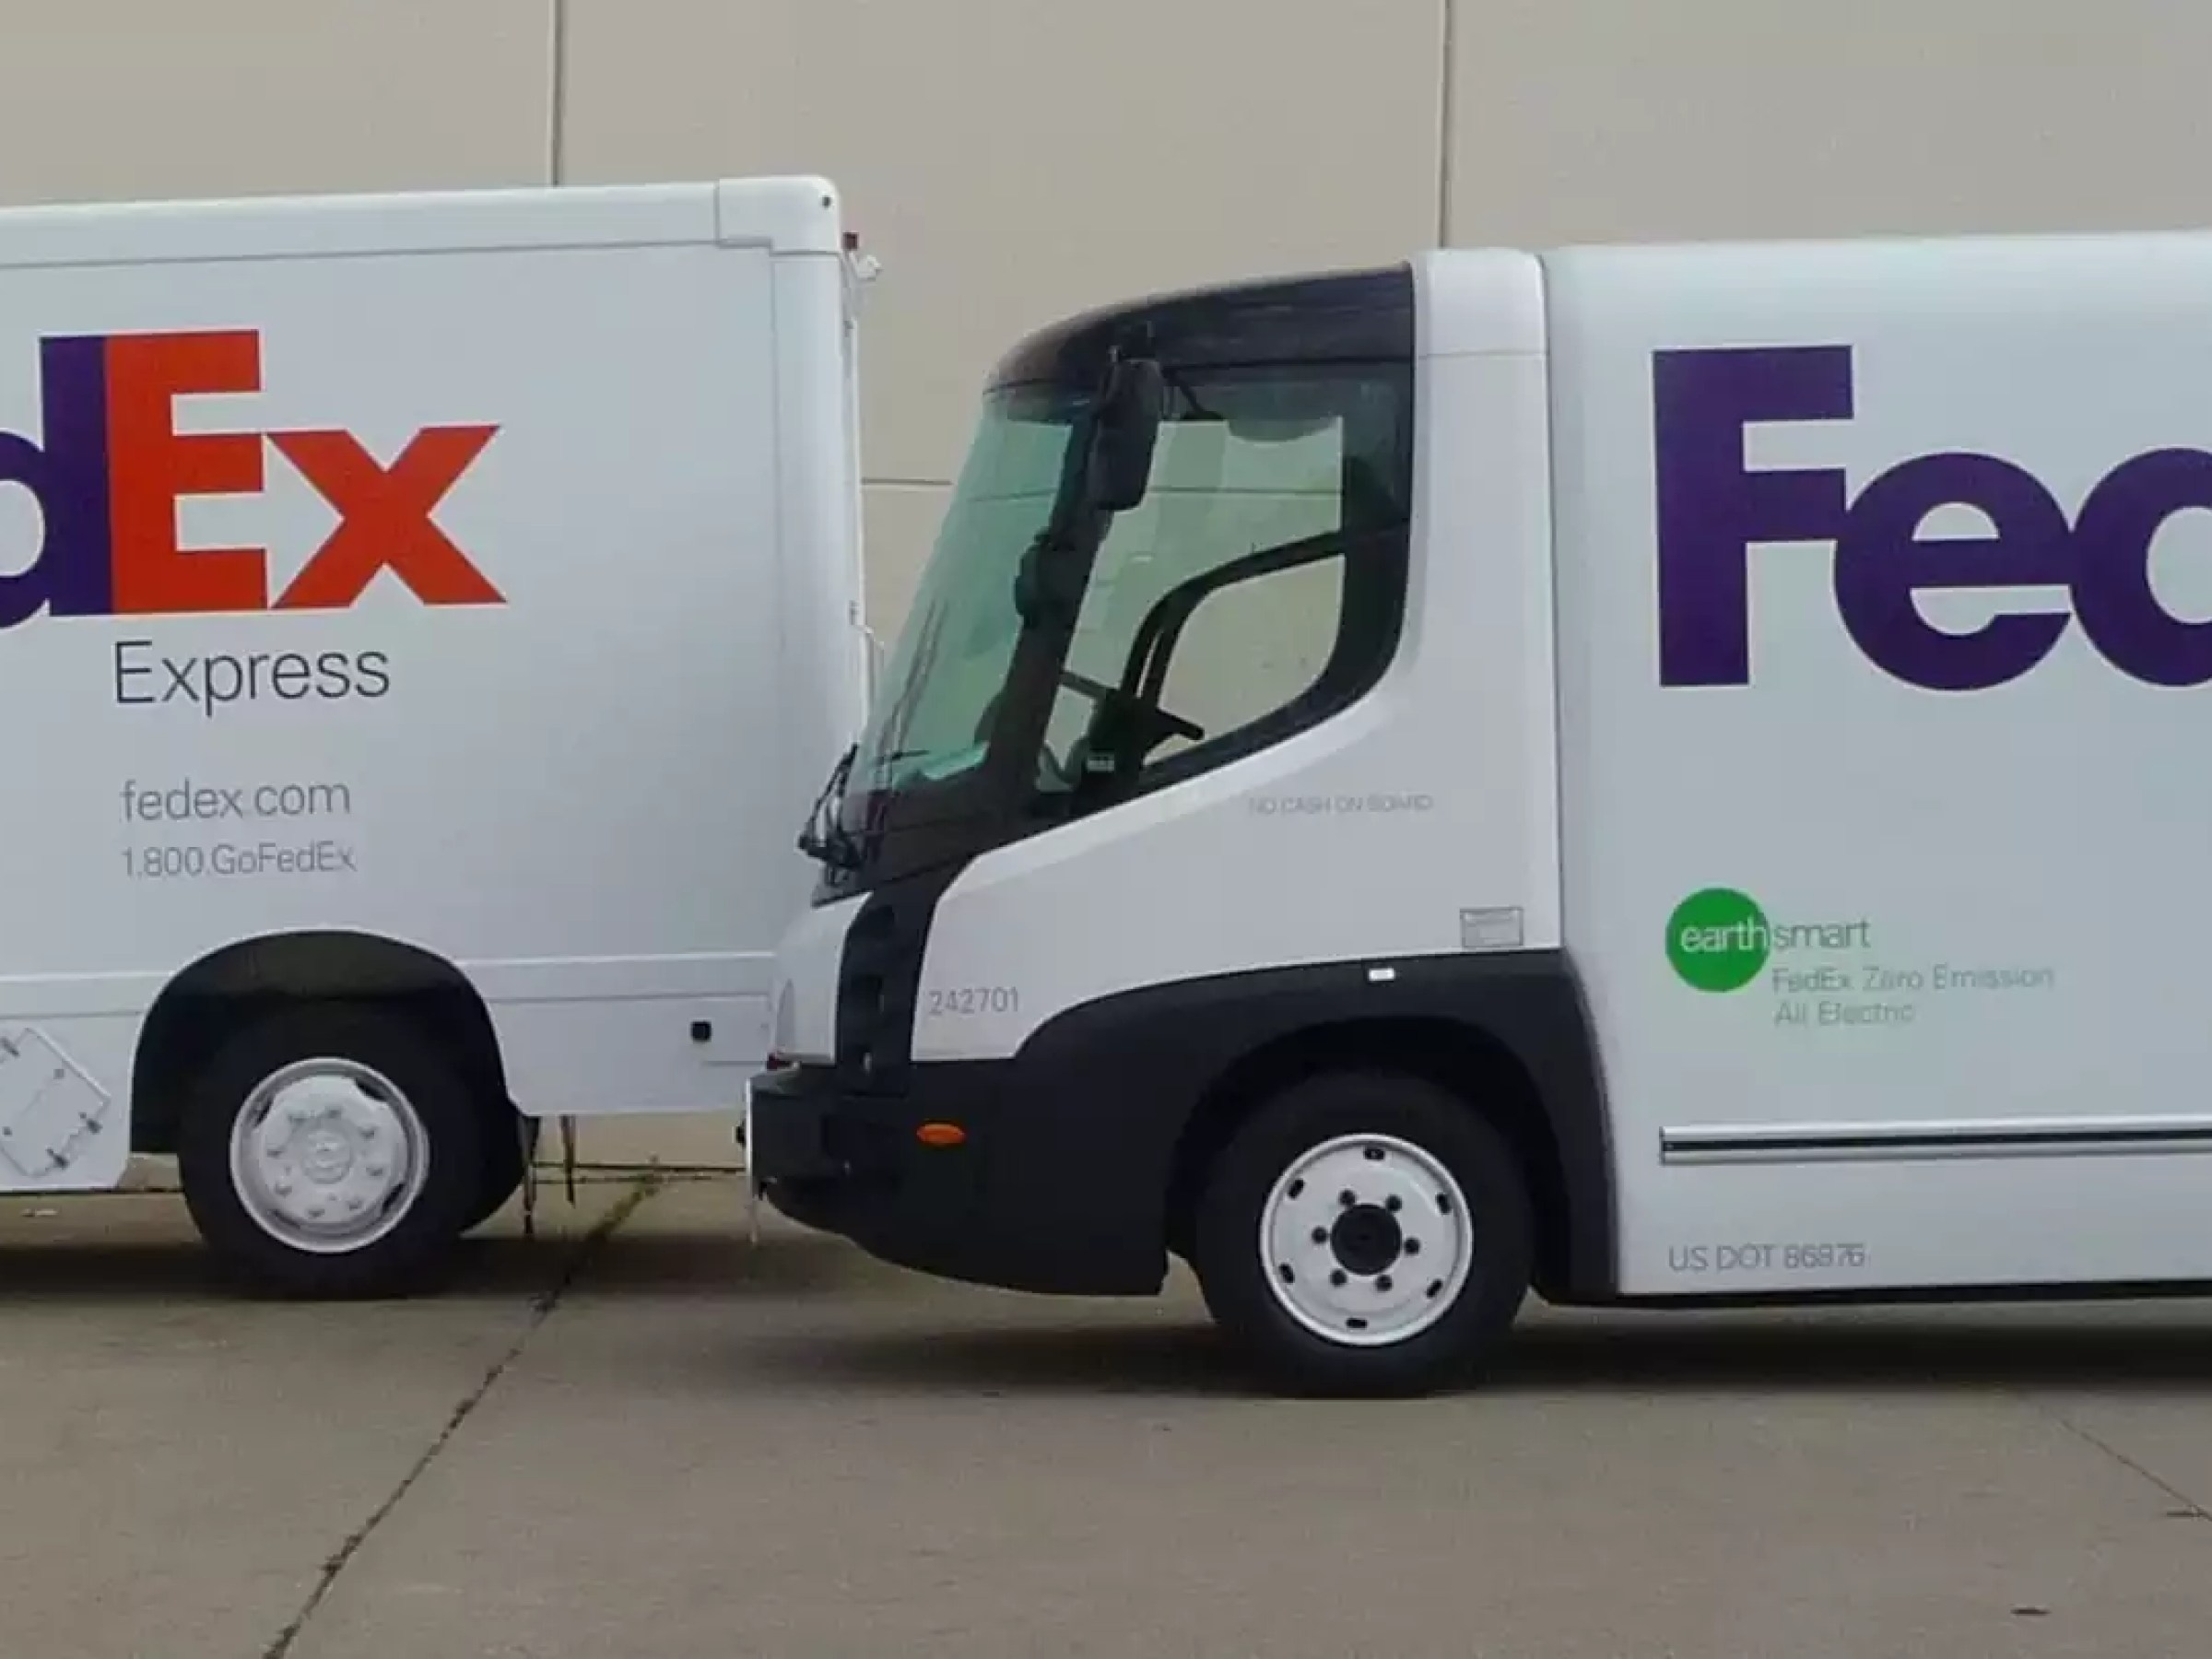 FedEx Adds More Than 4,000 New, Fuel Efficient Vehicles